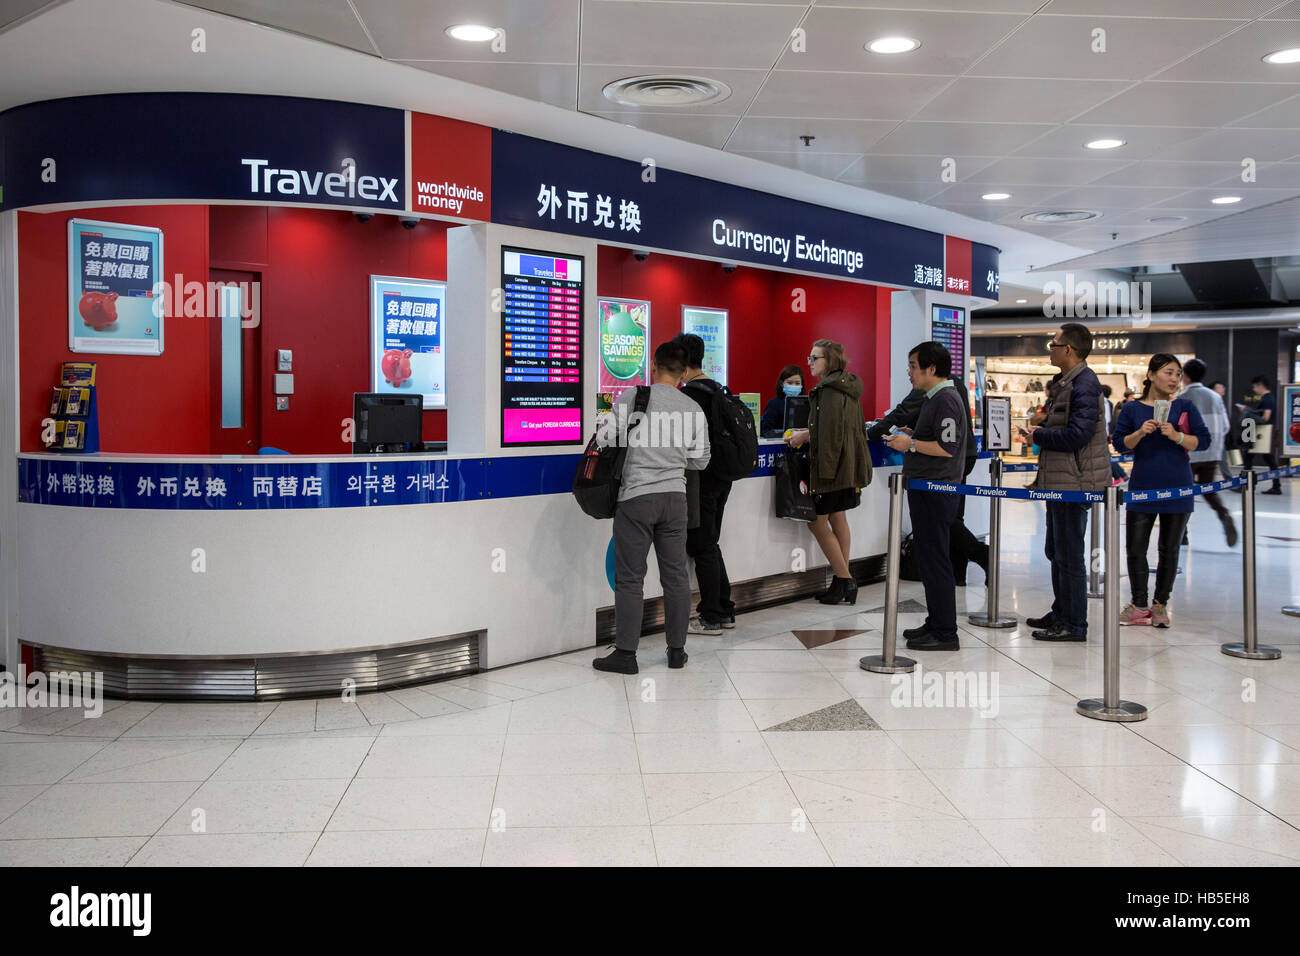 Travelex Currency Exchange Of Hong Kong International